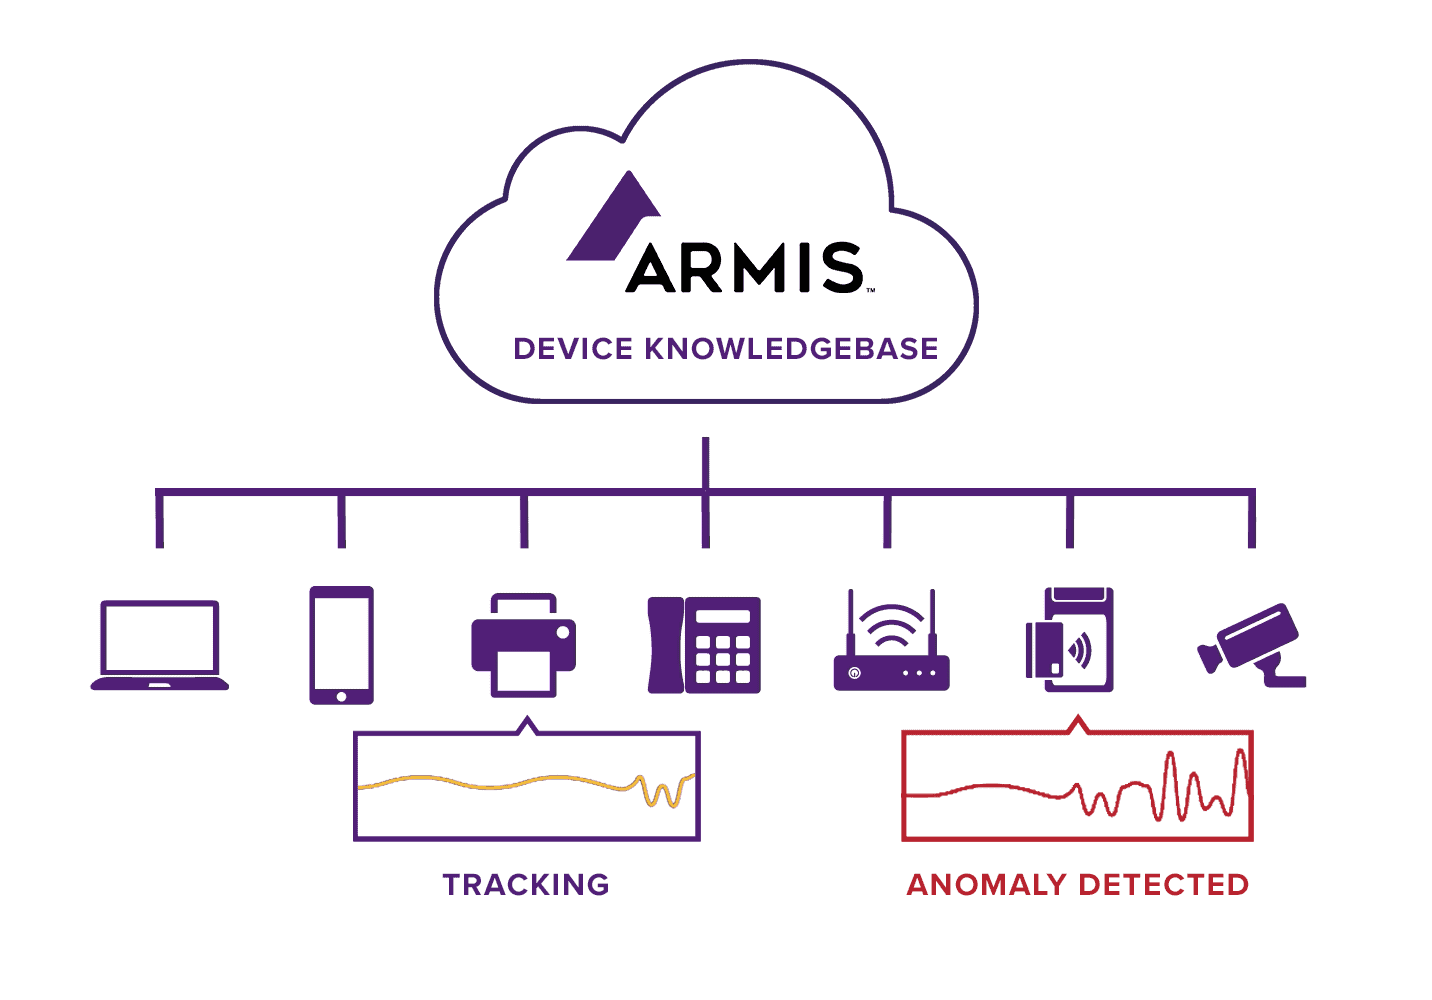 Armis knowledge database